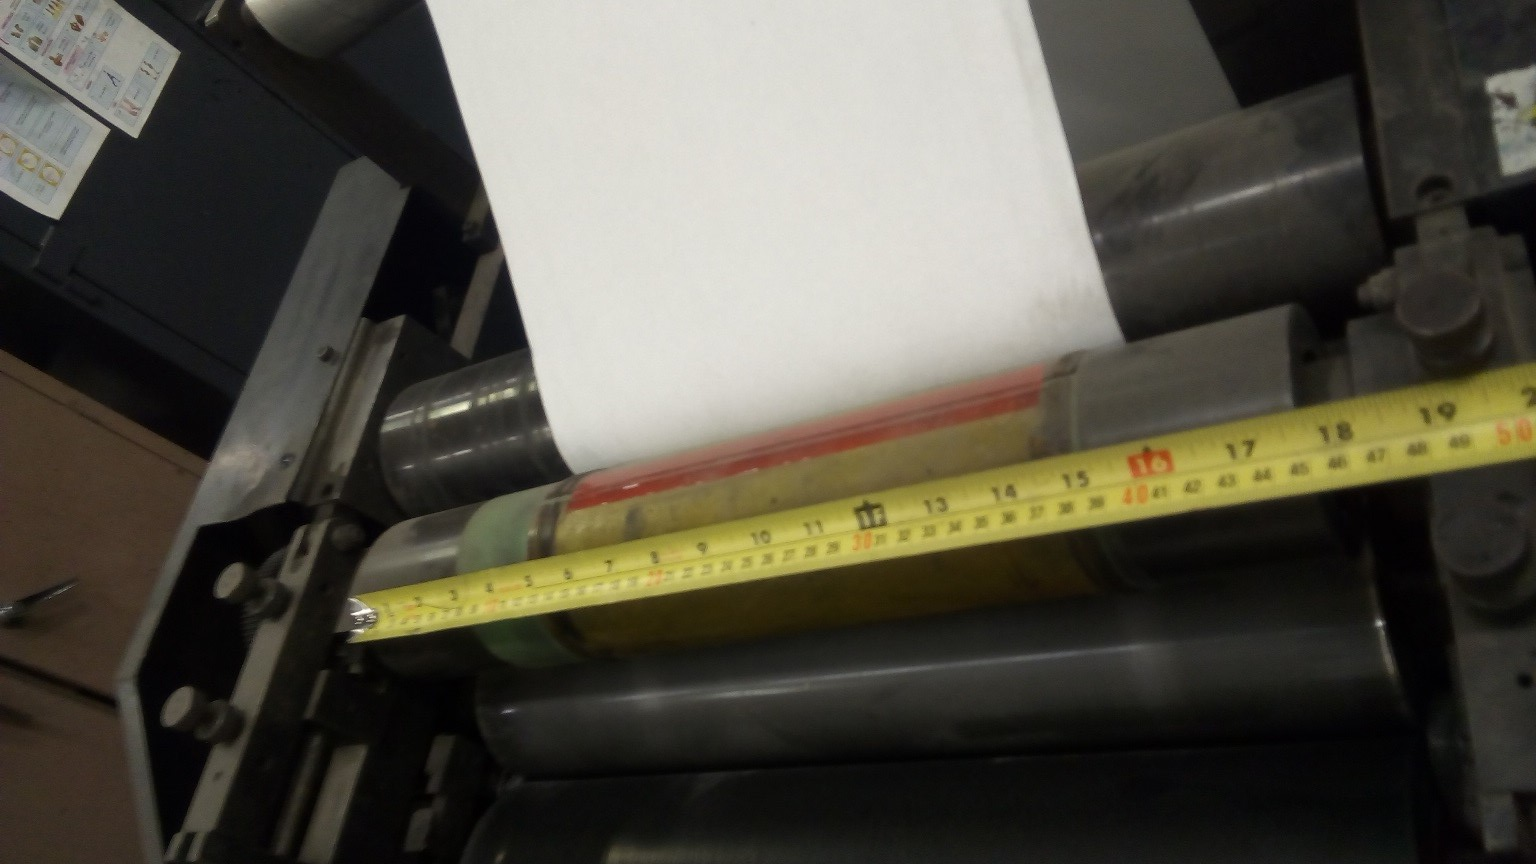 Propheteer 1800 - Used Flexo Printing Presses and Used Flexographic Equipment-6